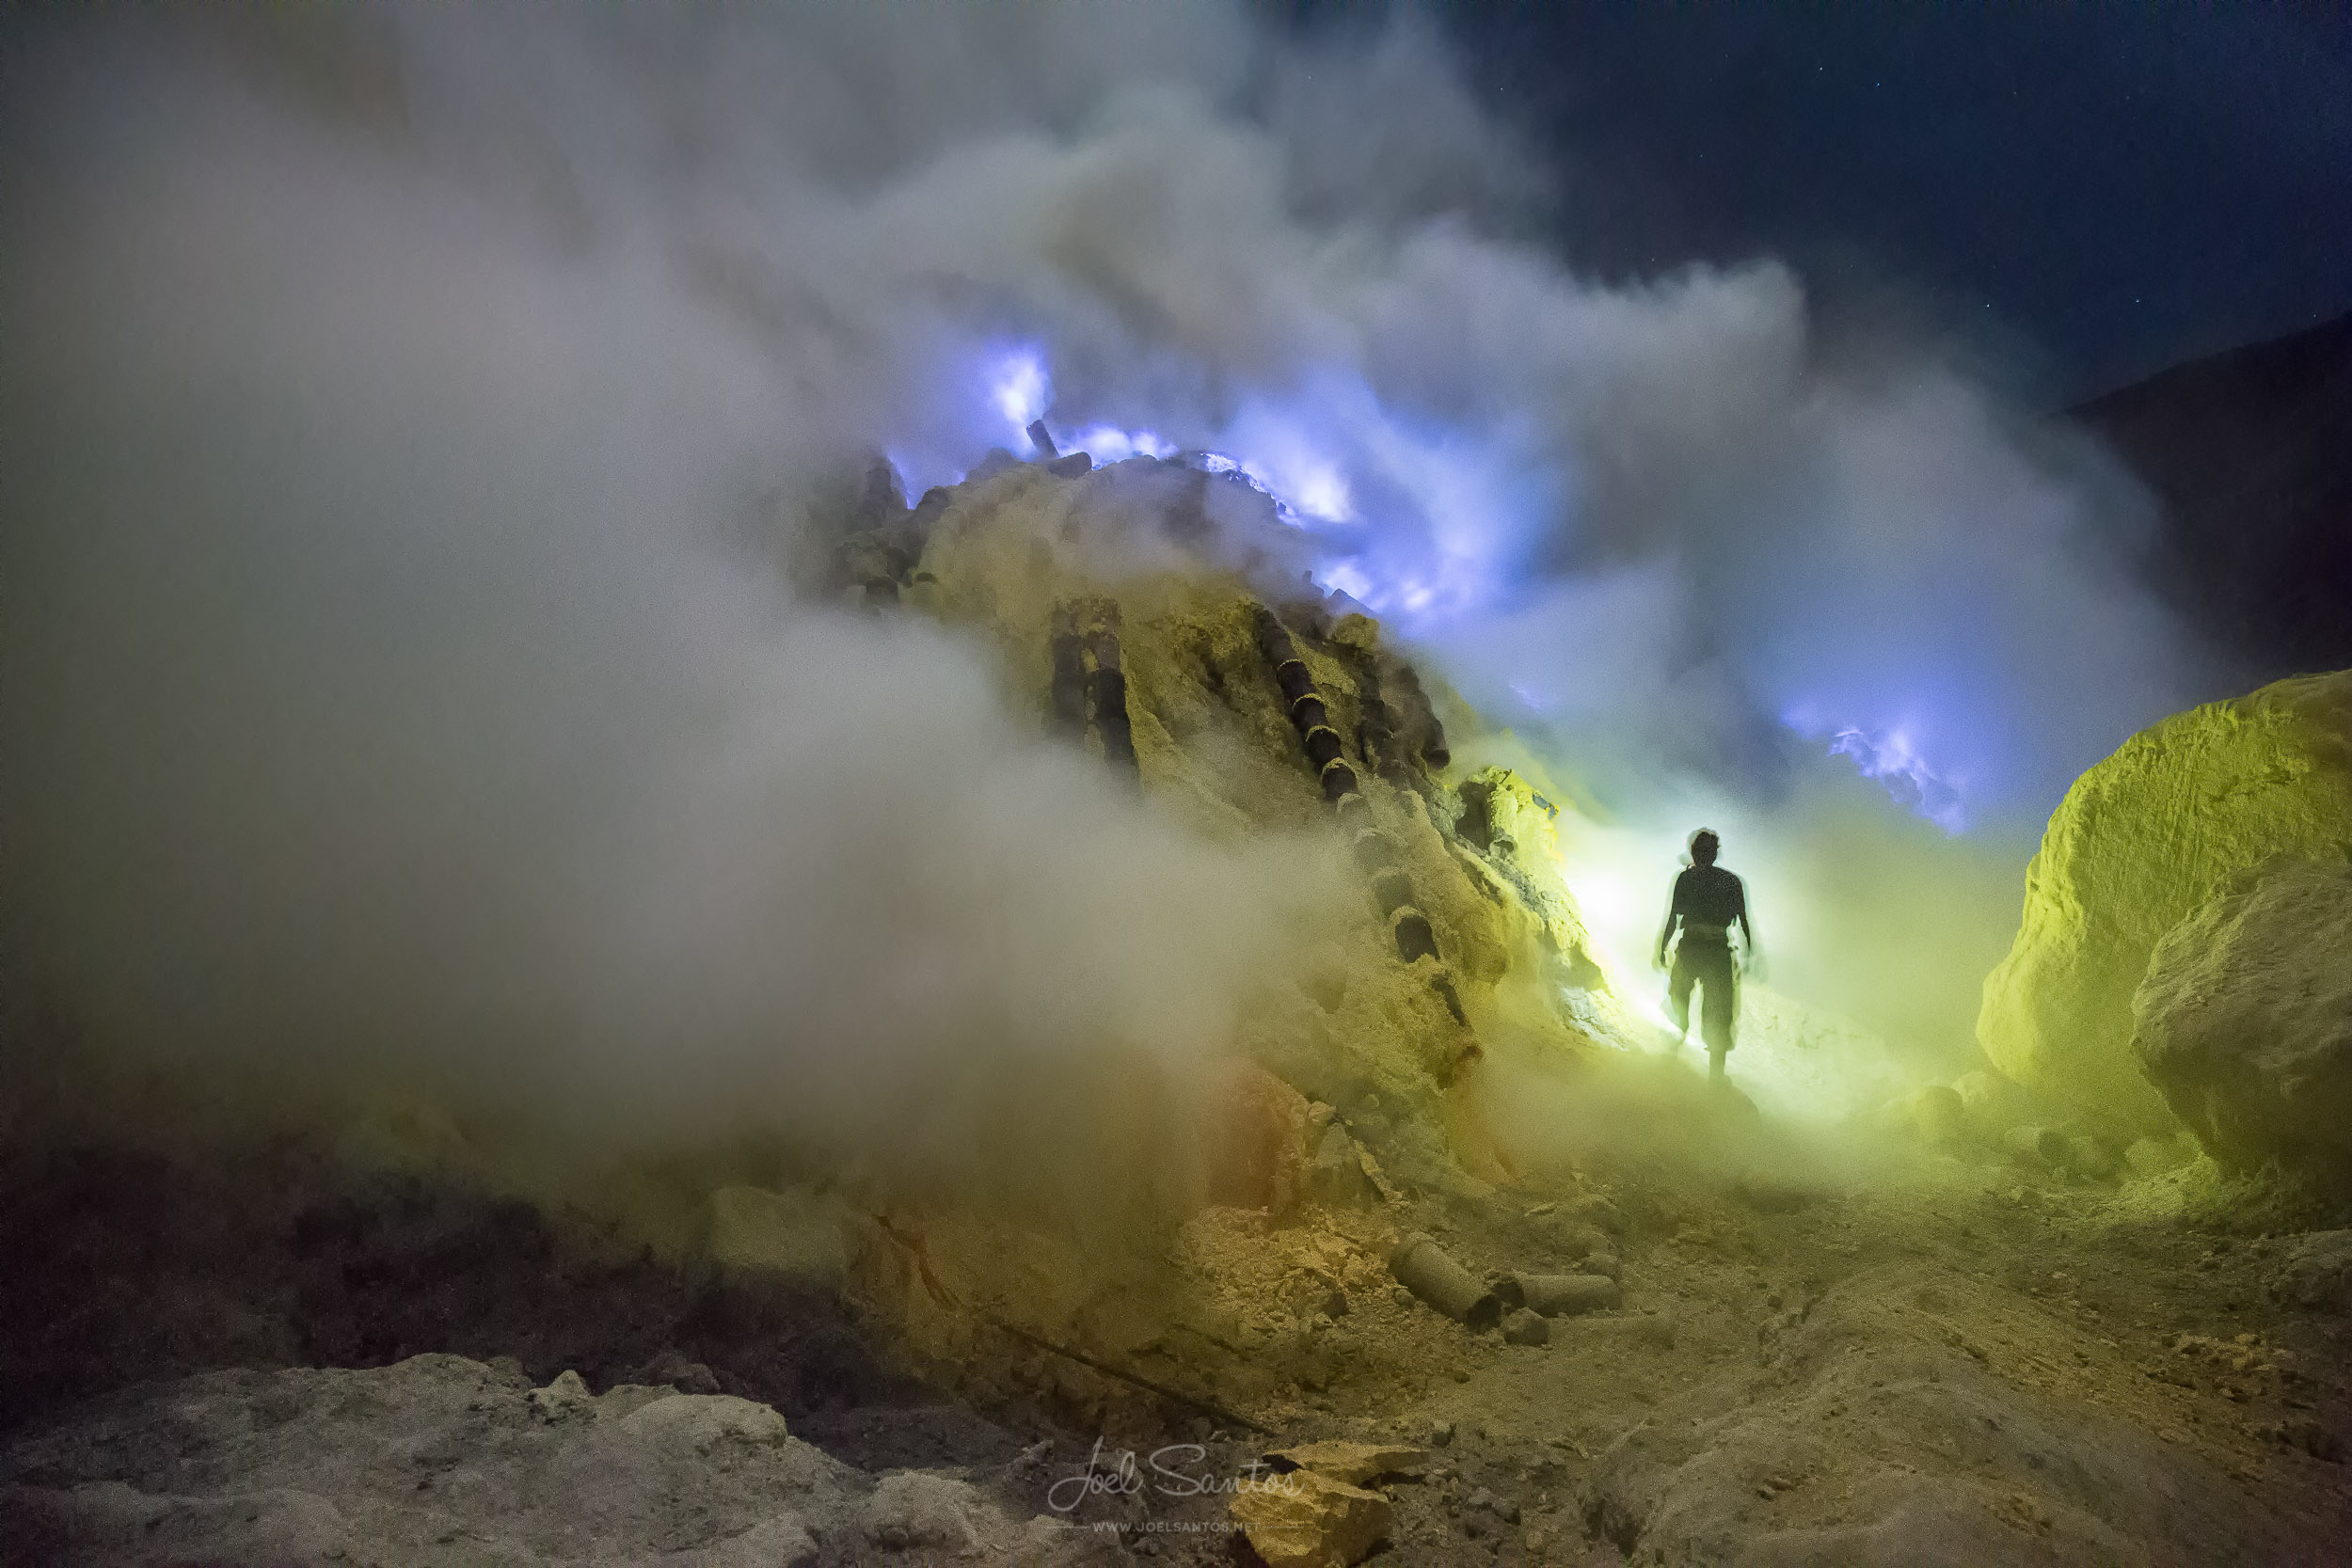 Miner working surrounded by sulphur fumes and gases, Kawah Ijen